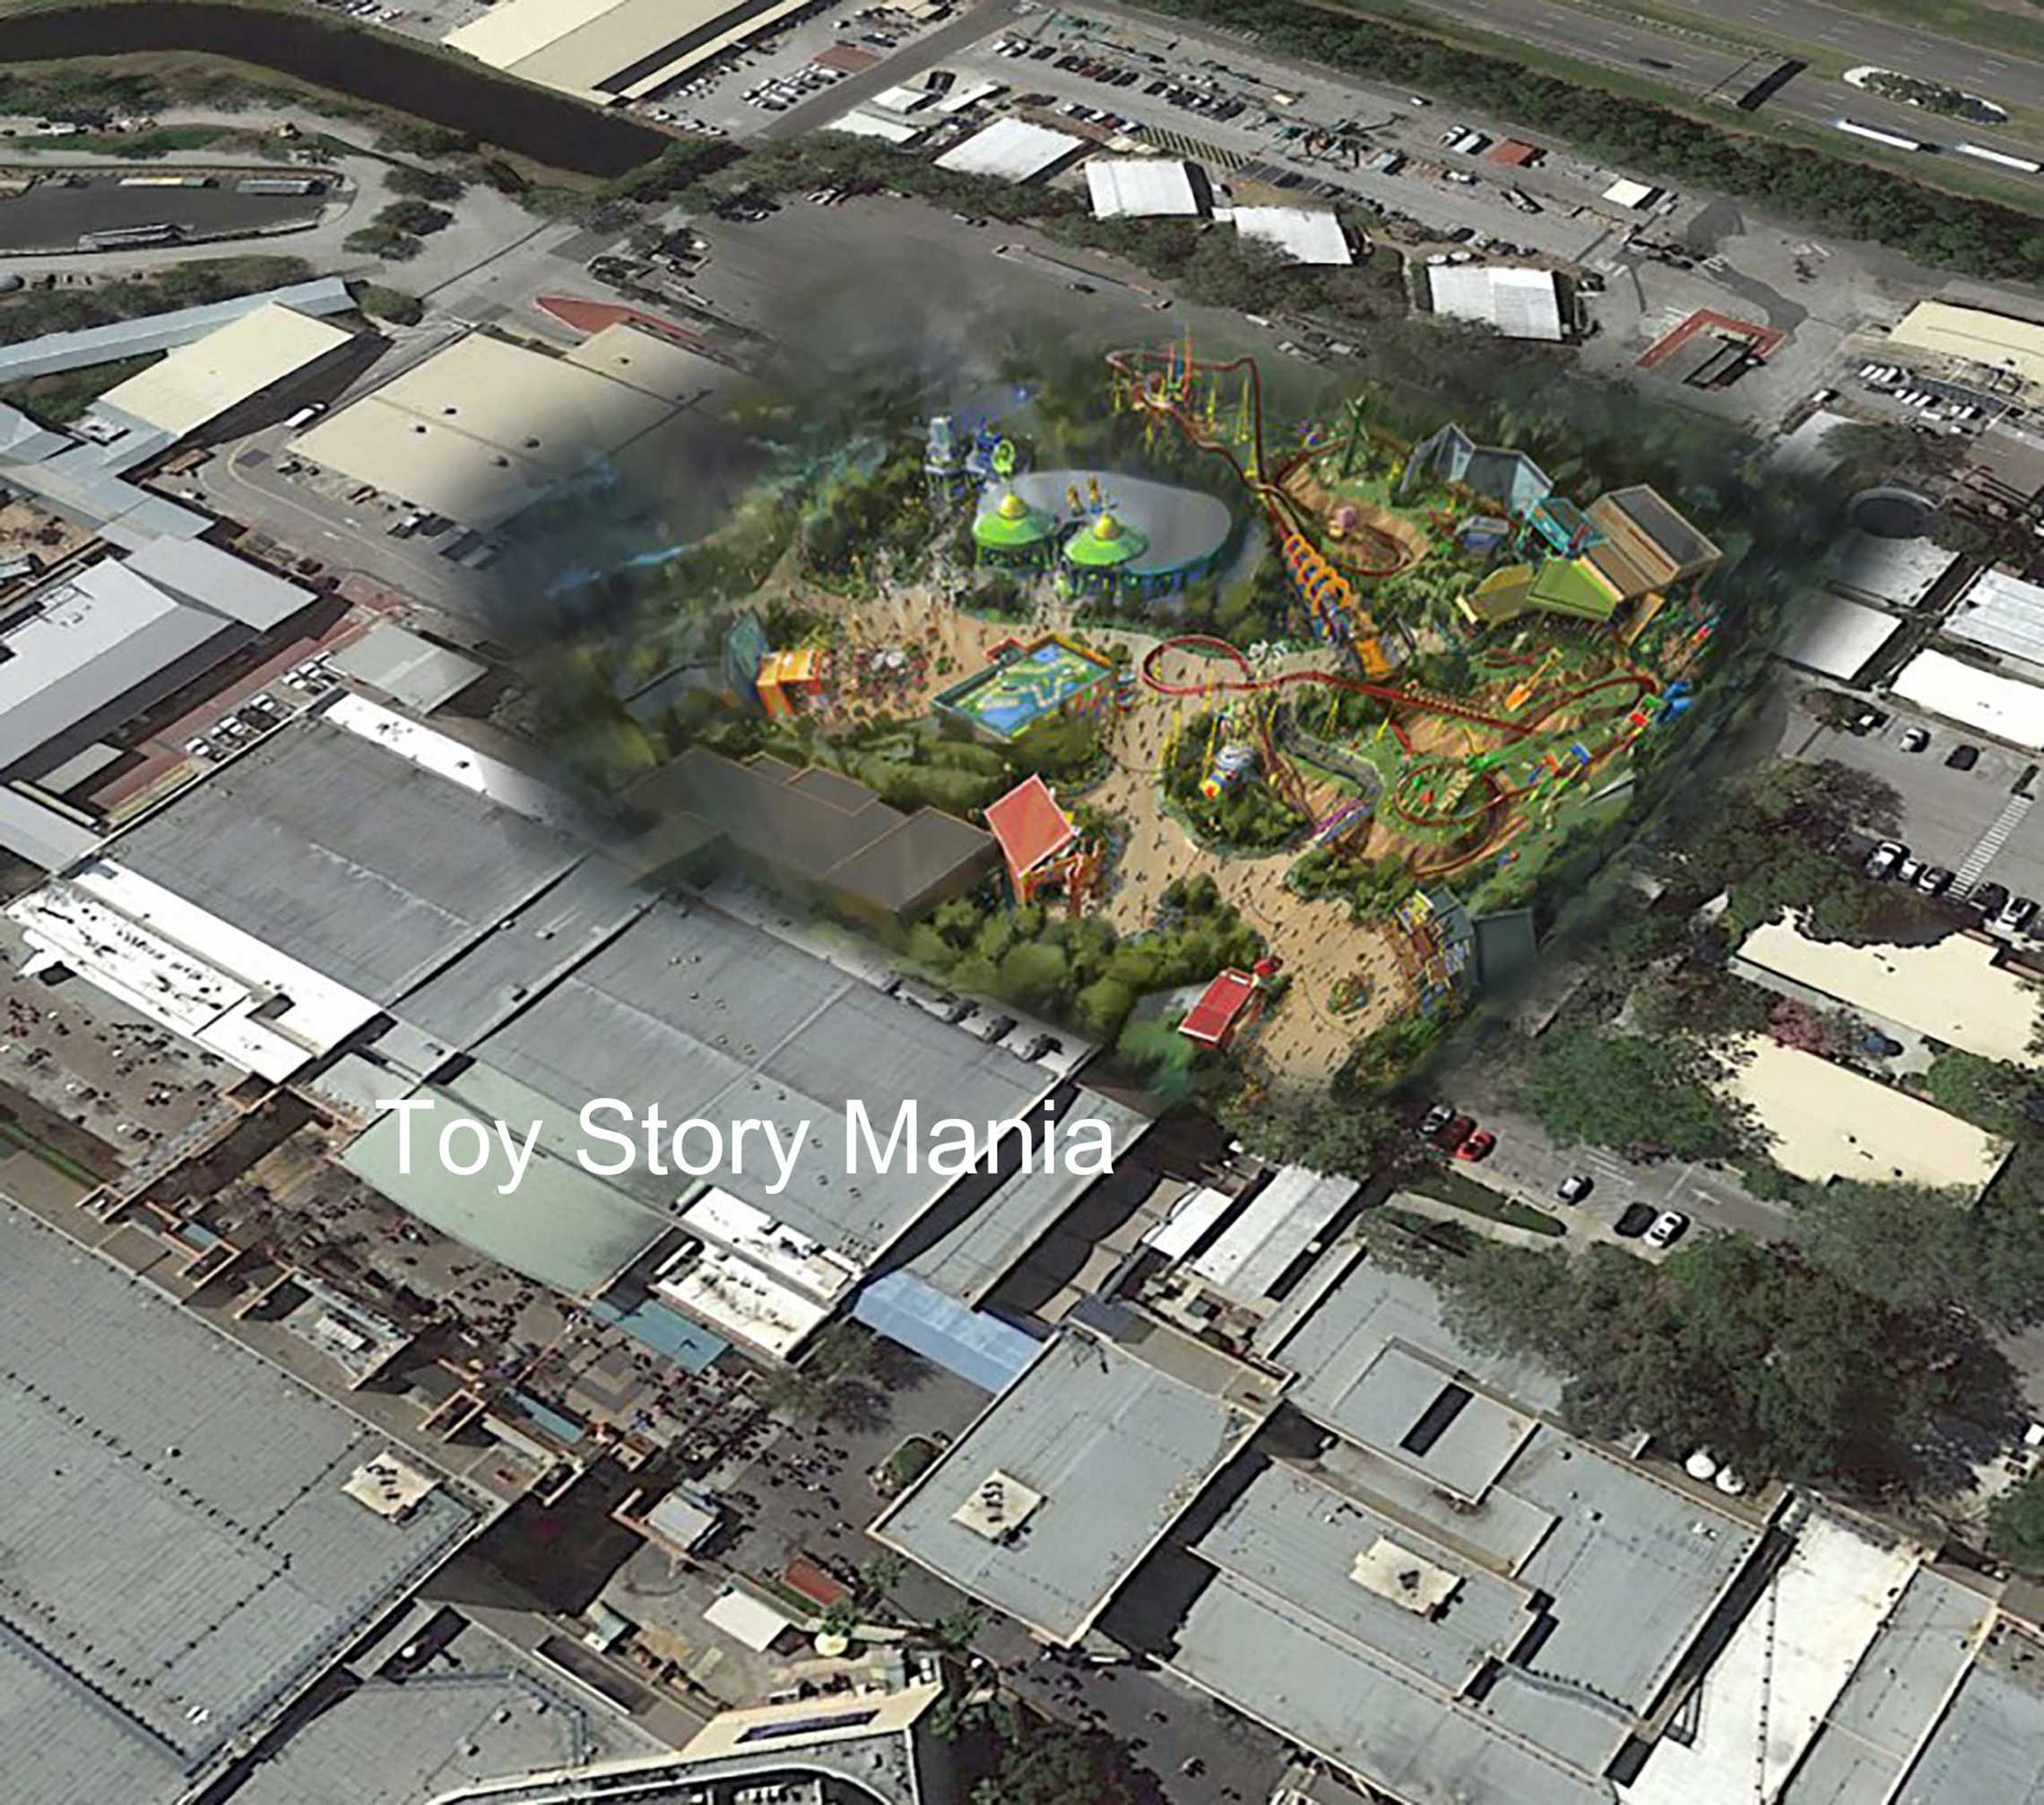 Possible location of Toy Story Land at Disney's Hollywood Studios. By Martin Smith